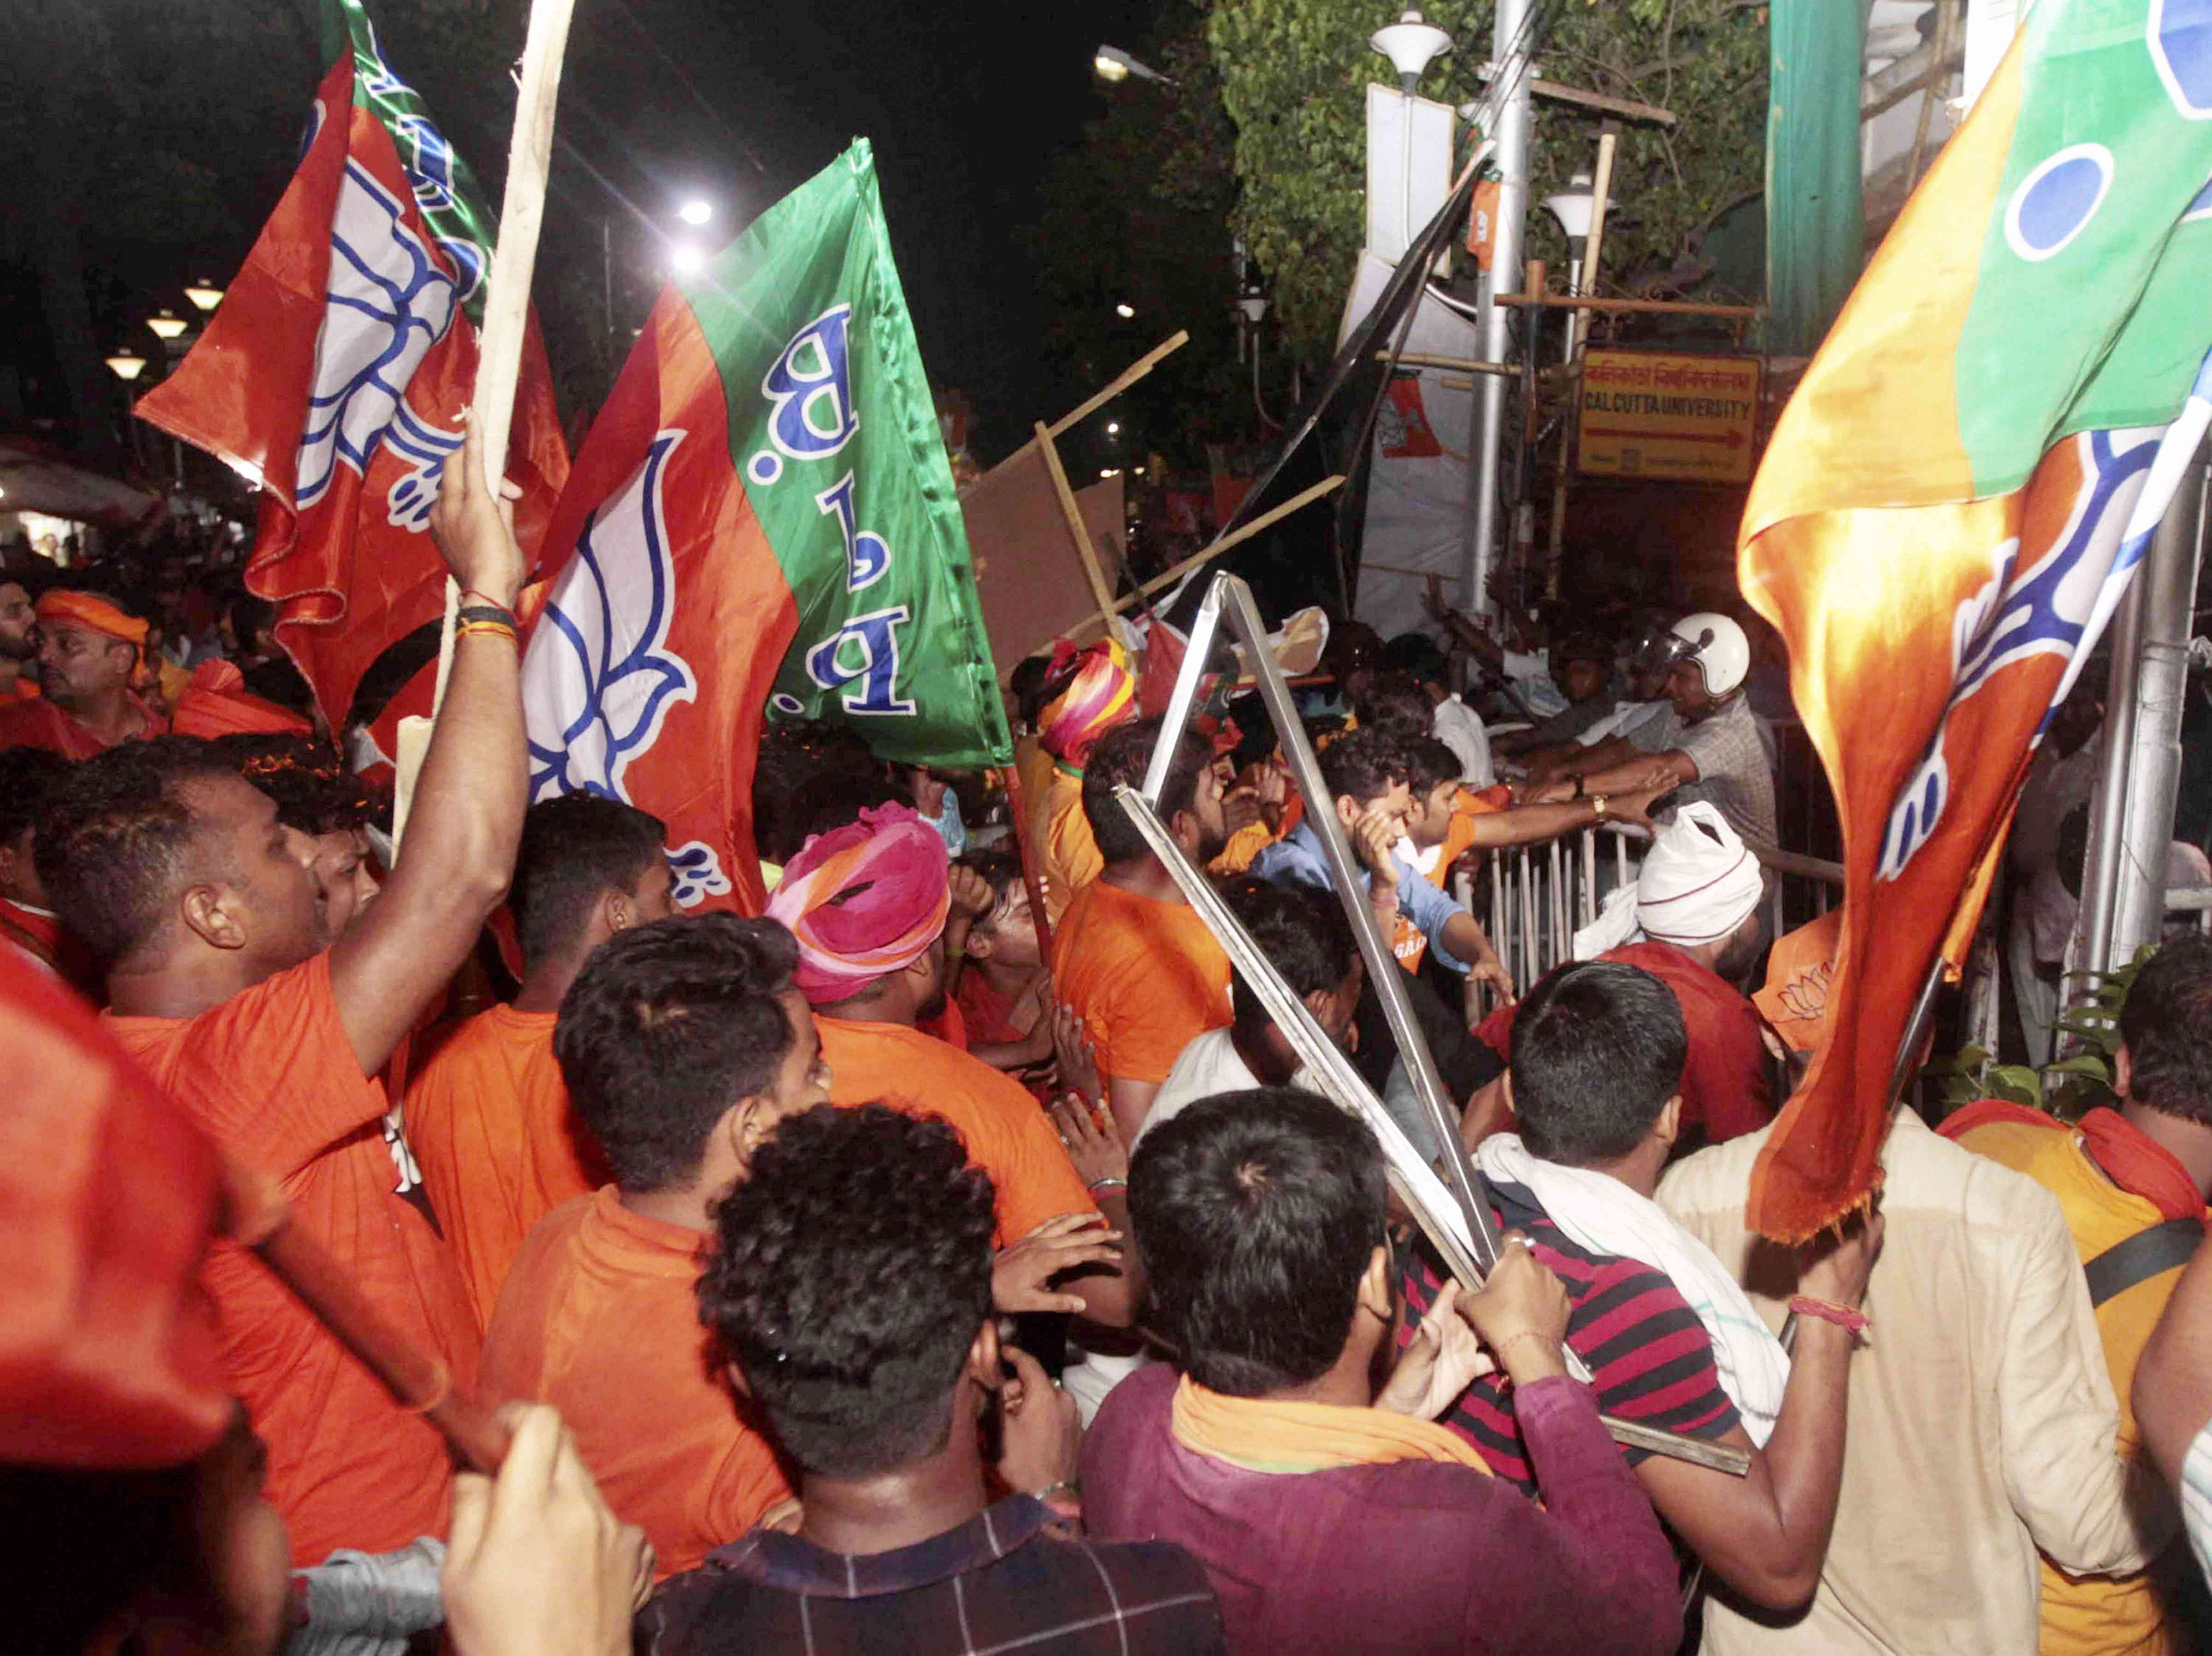 BJP supporters clash with the police during Amit Shah's rally in Kolkata on May 14. Credit: PTI